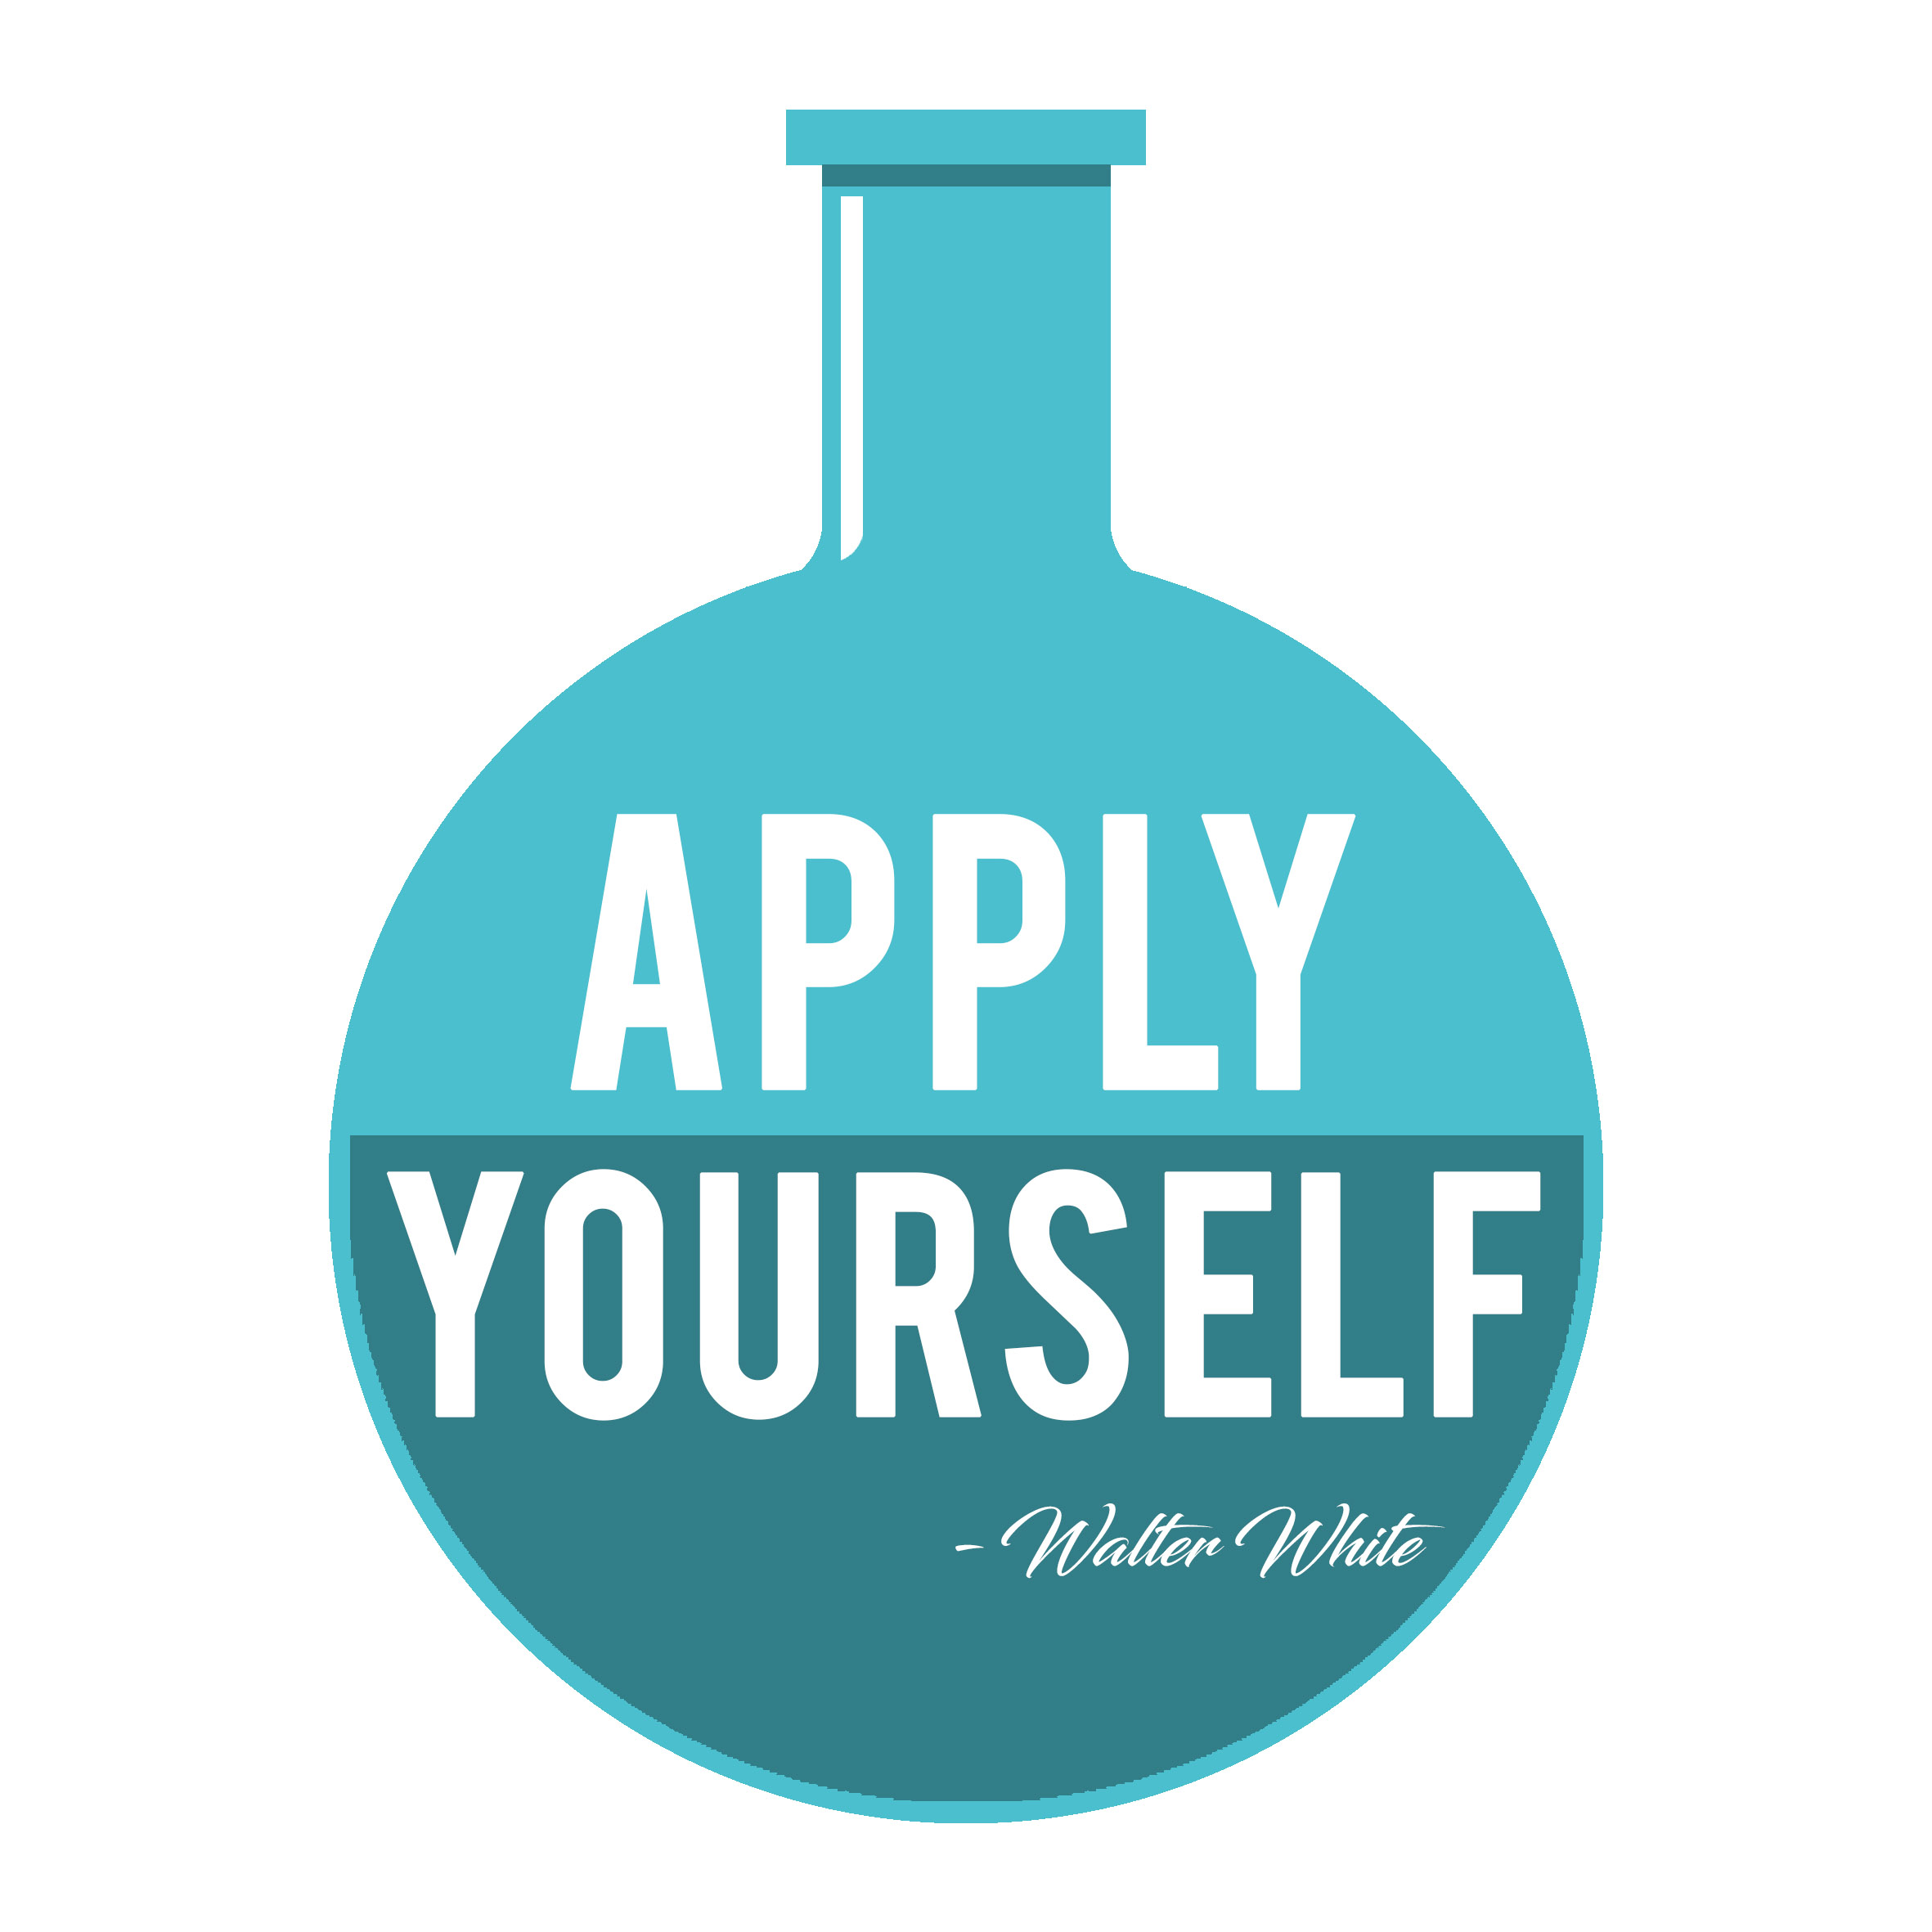 [Image] Apply Yourself